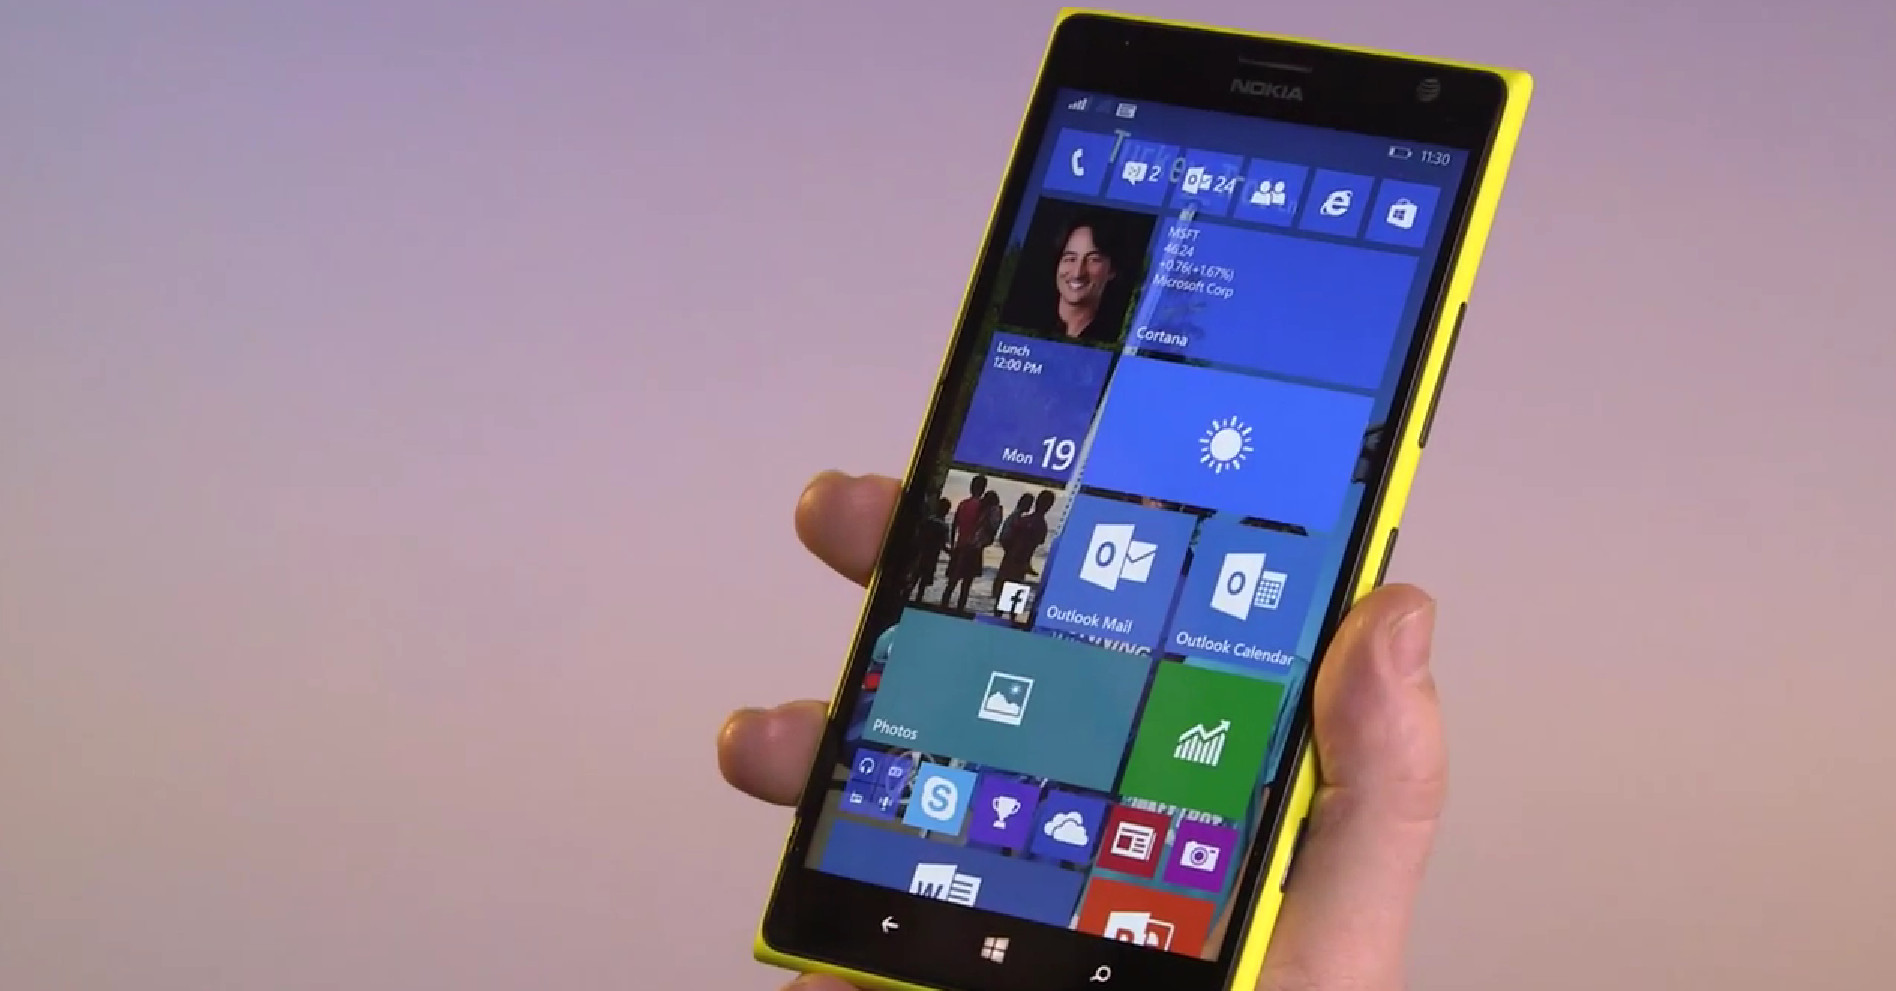 Windows 10 on phones all the new features 1896x991